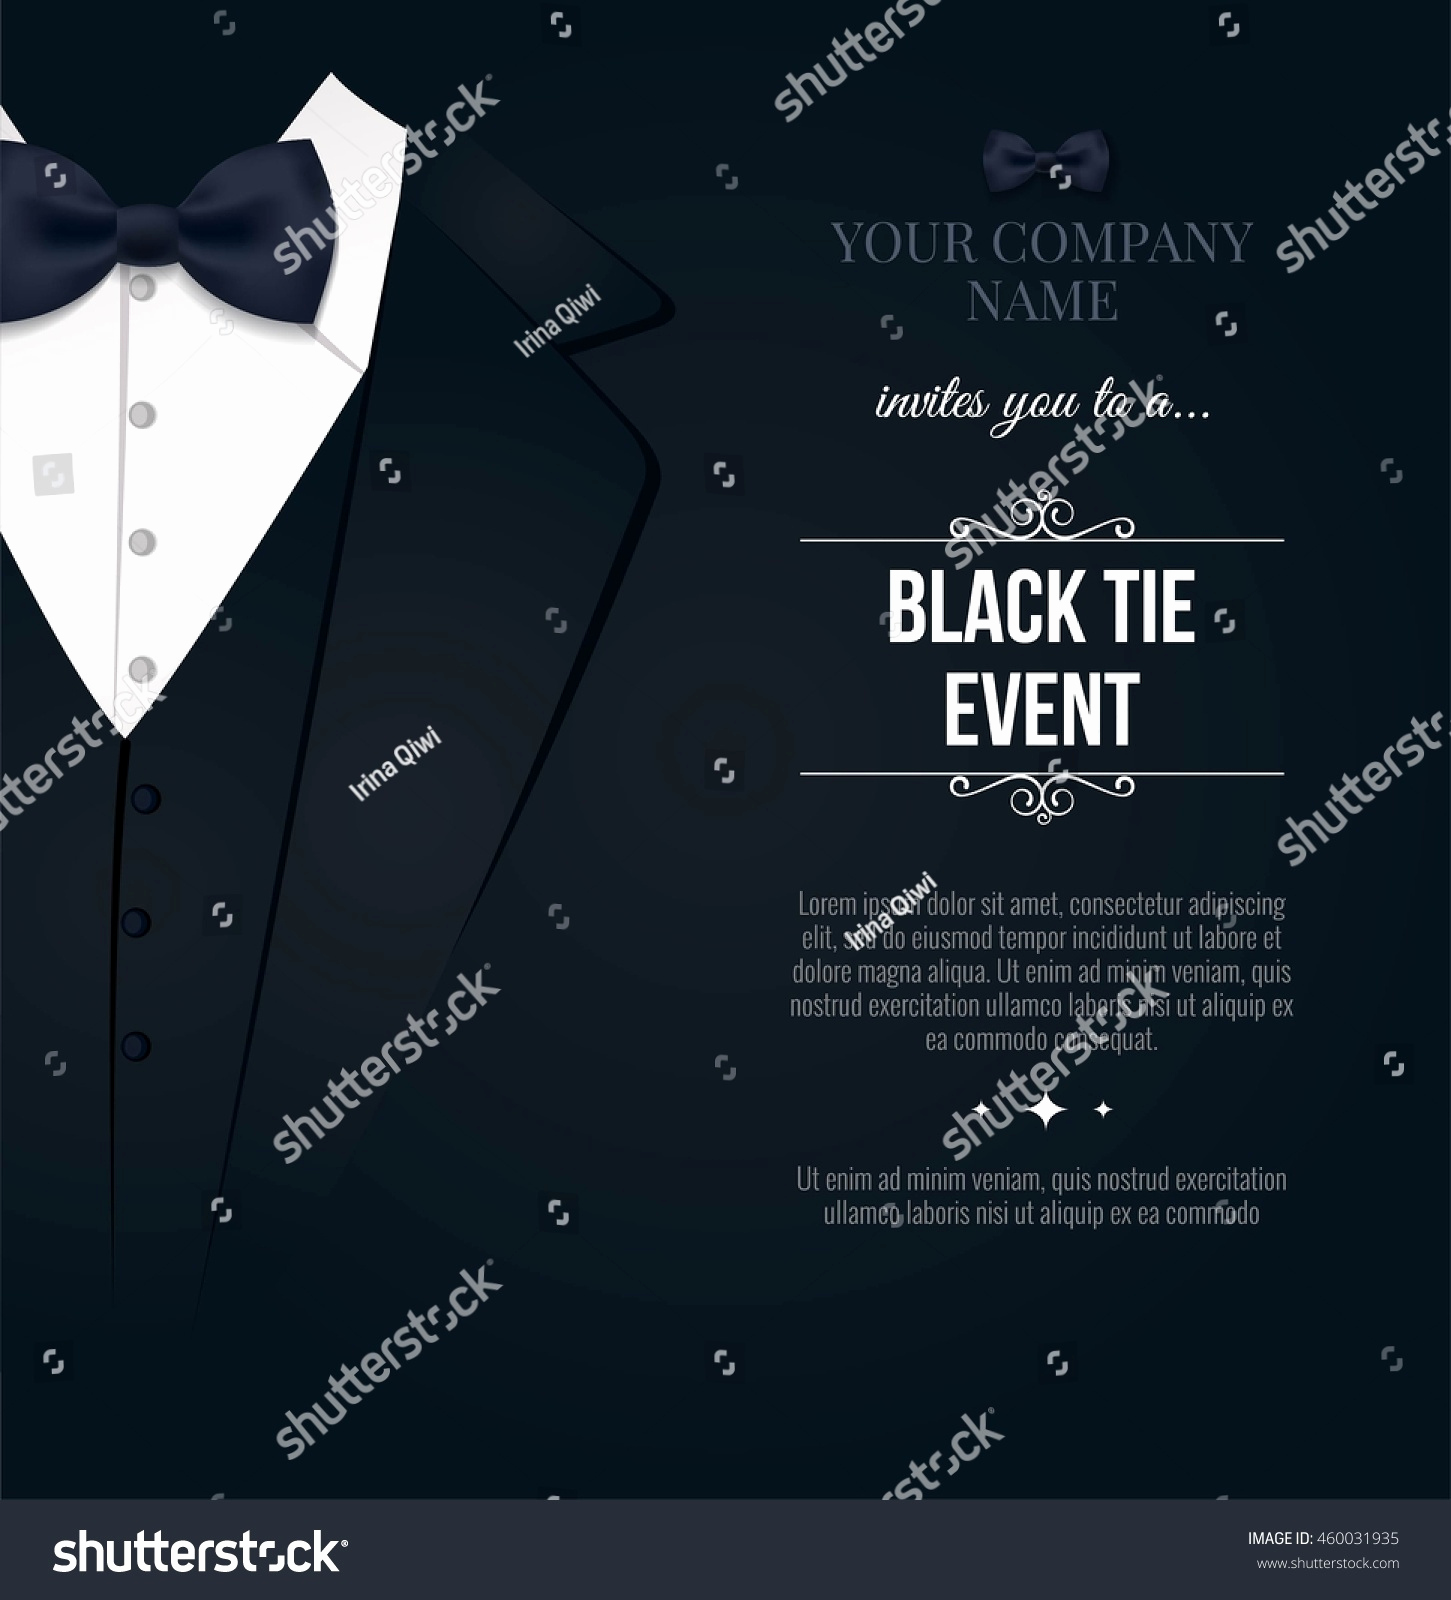 Black Tie event Invitation New 58 Black Tie event Invite Black Tie Invite 2016 the